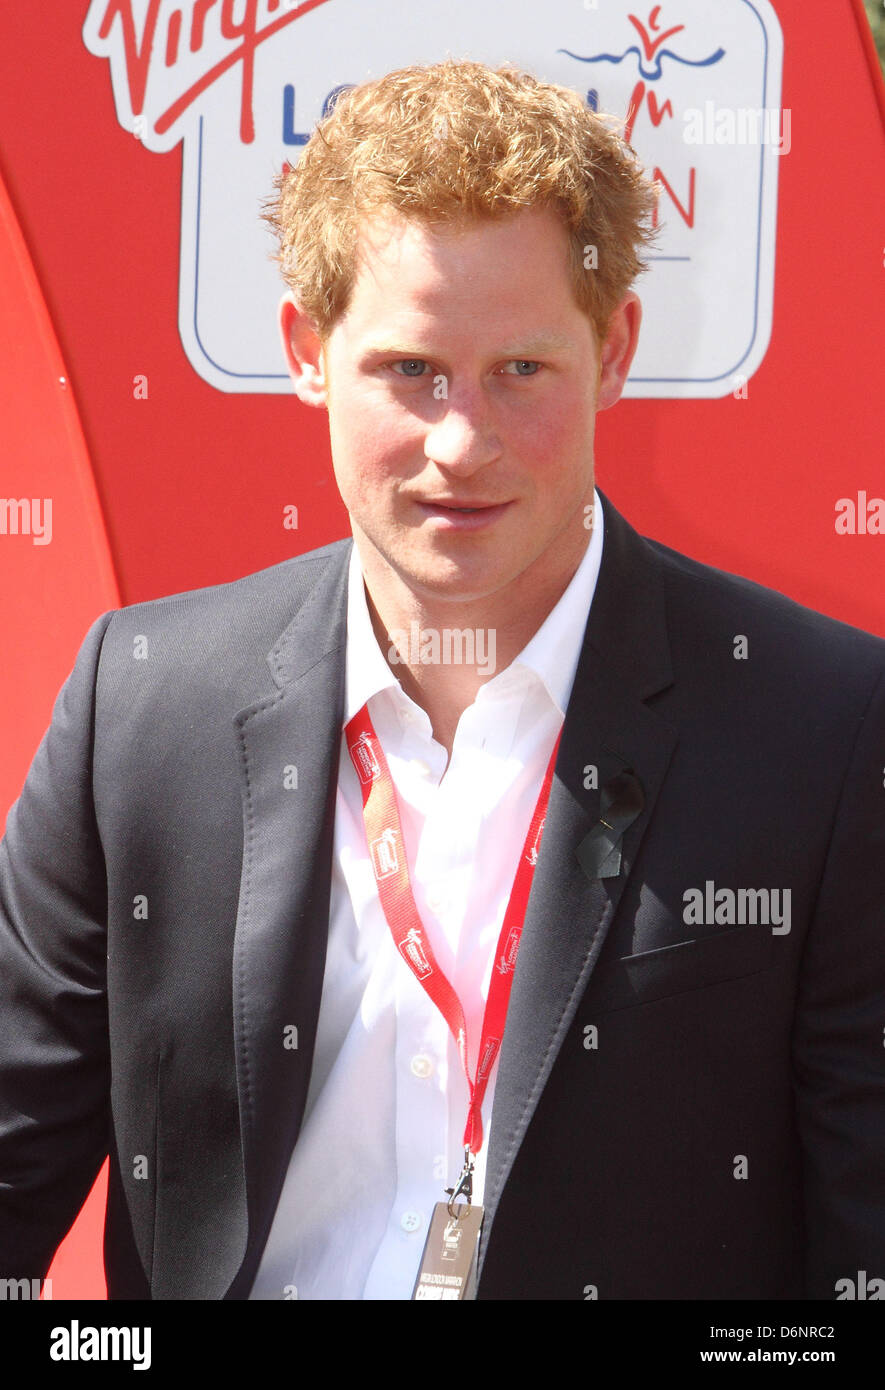 London, UK. 21st April, 2013. Prince Harry at the Presentations at the finish of the London Marathon 2013.  Photo - Stock Image